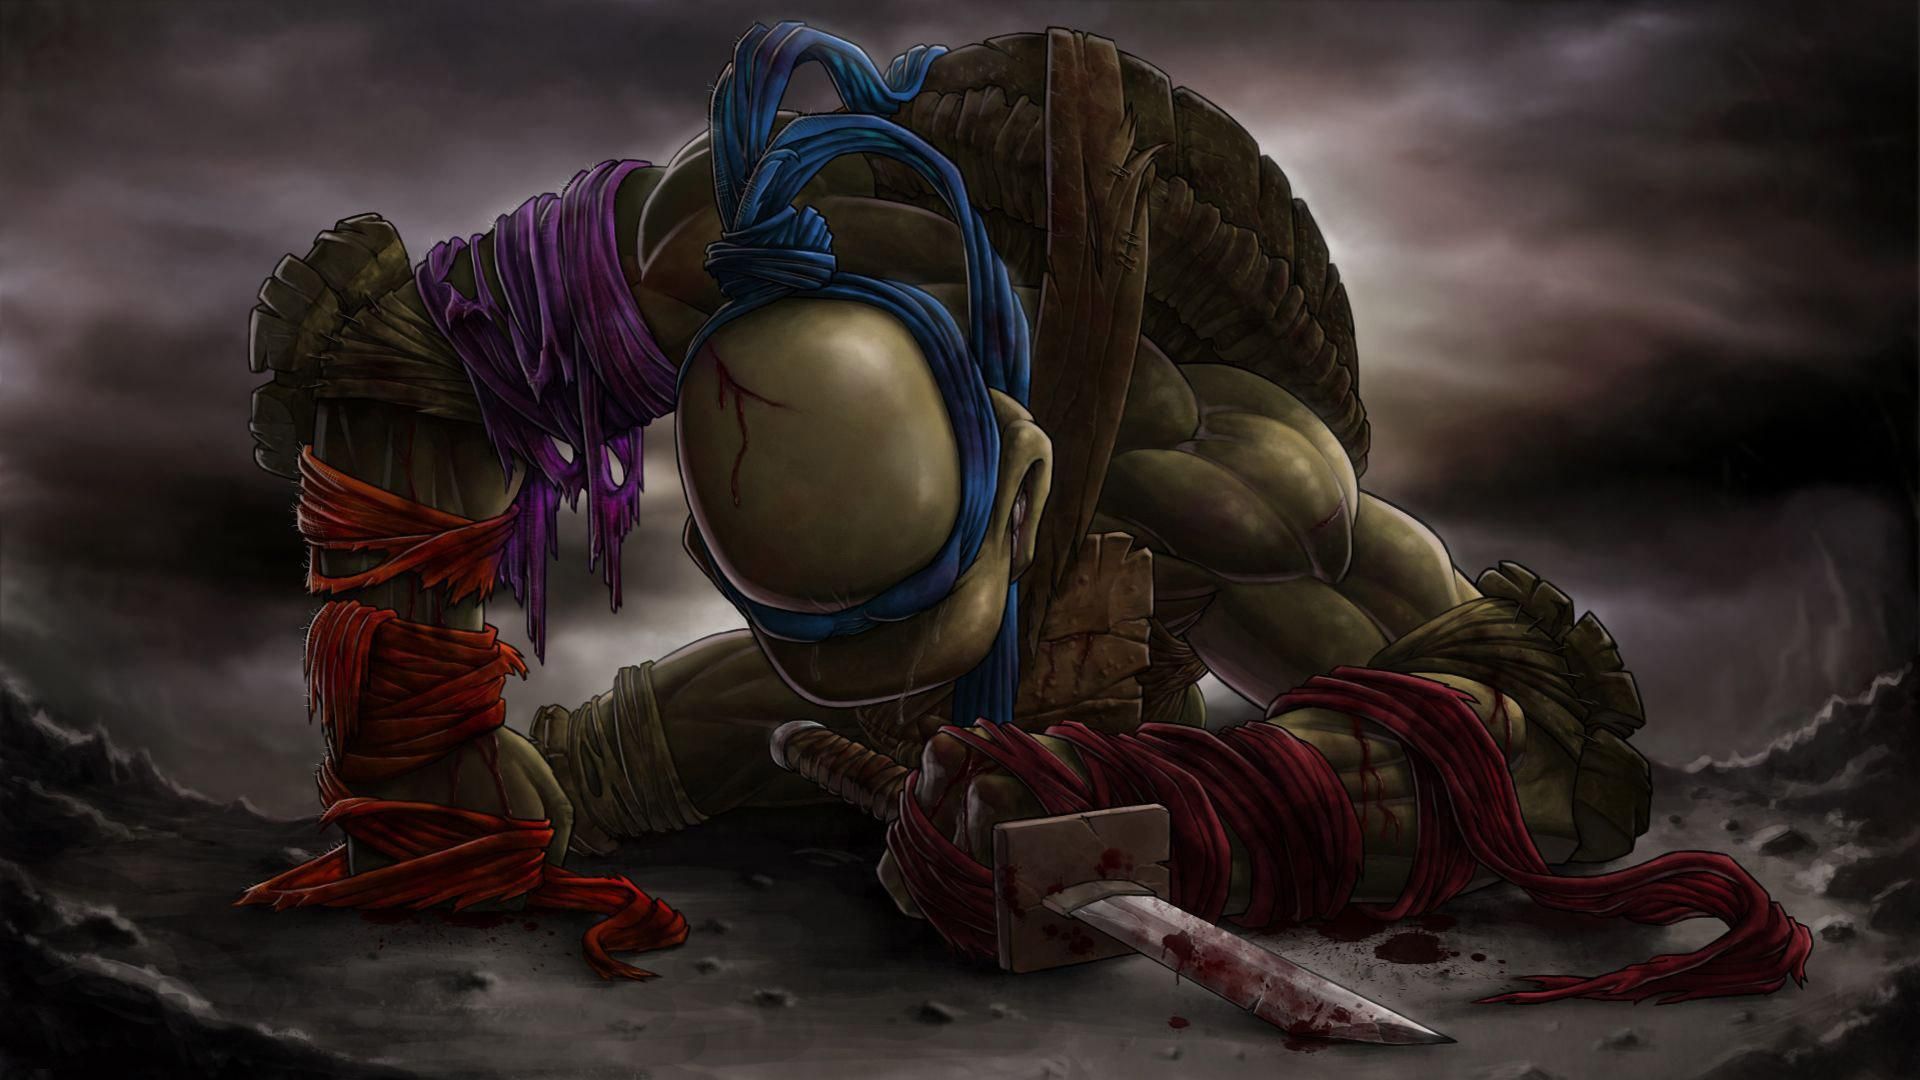 TMNT Wallpaper HD Wallpapers Desktop